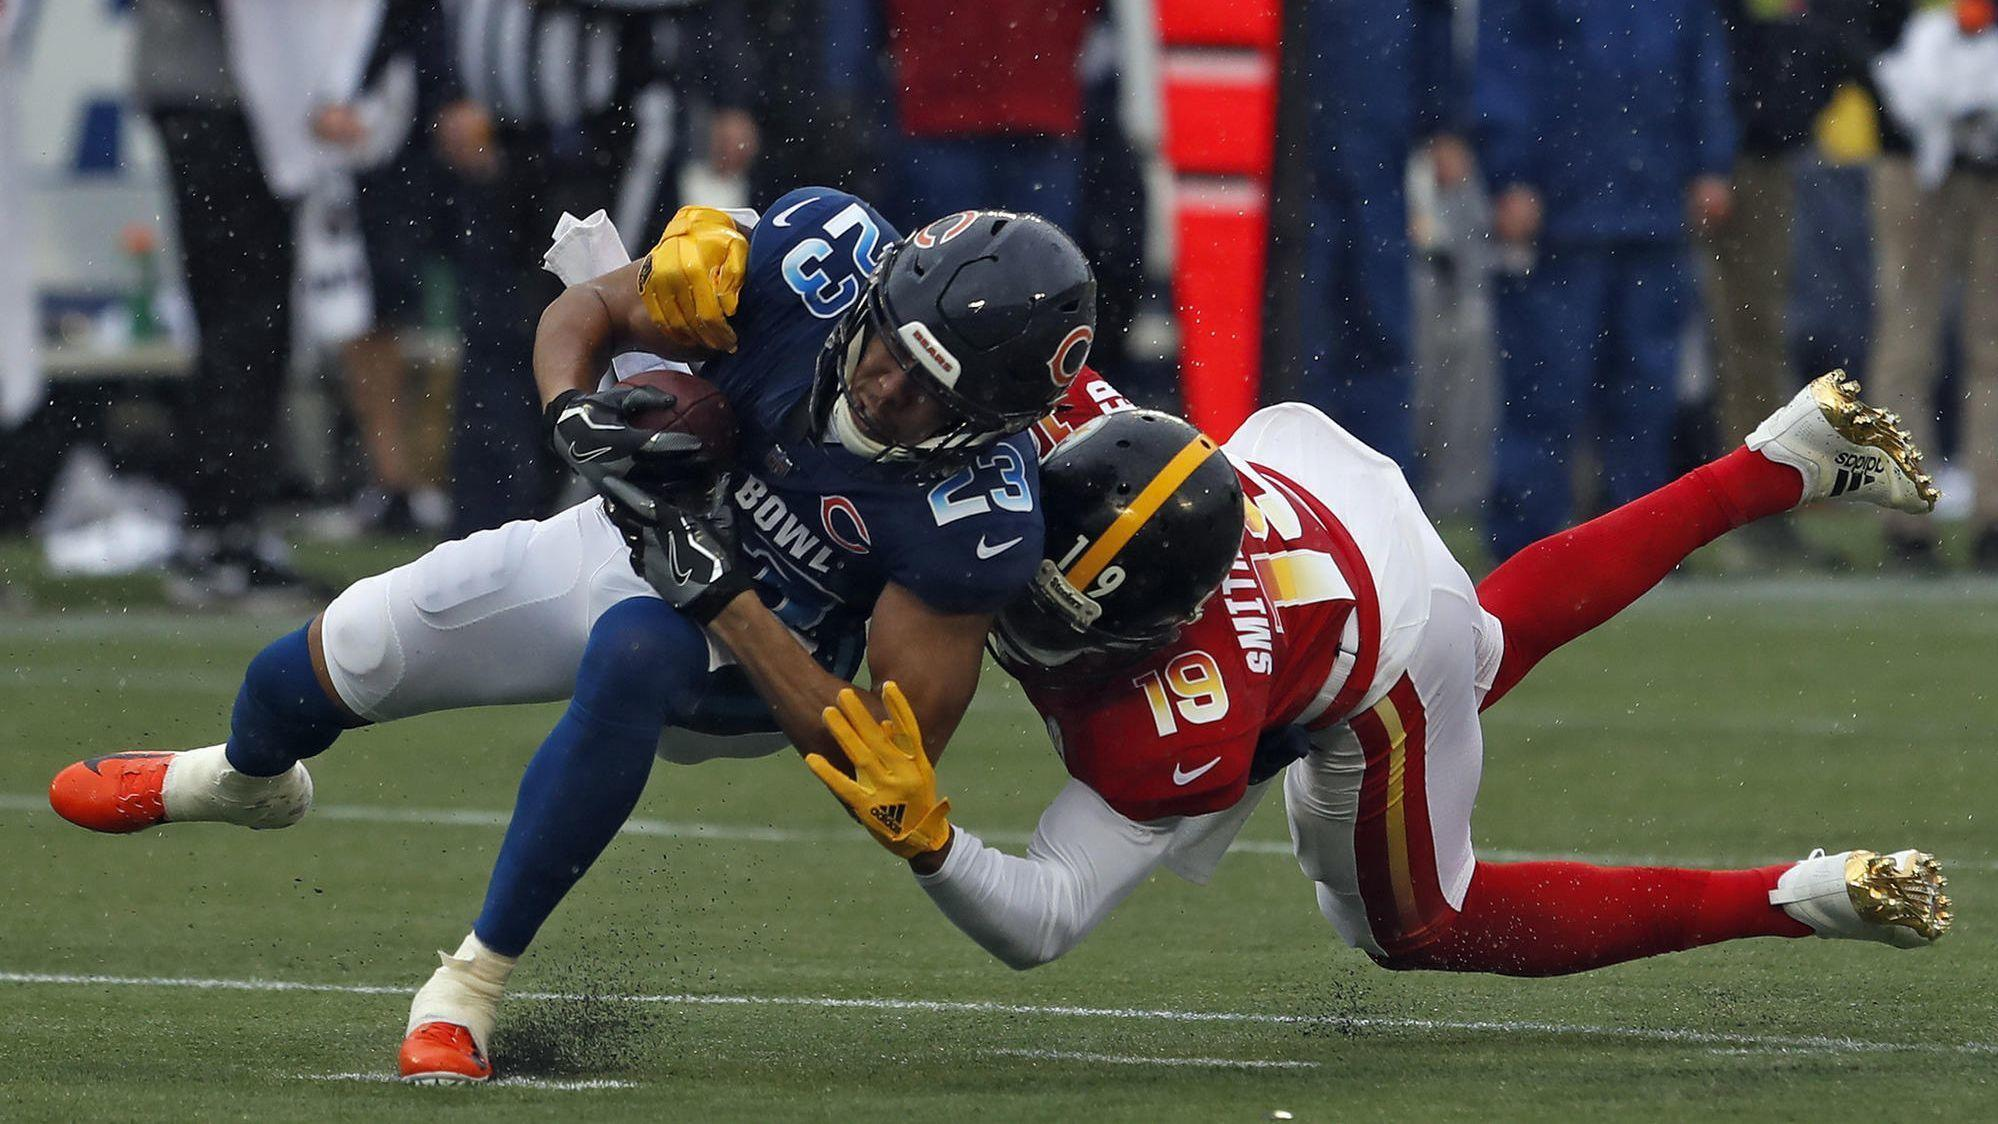 a9a9ad591 9 takeaways from the Bears in the Pro Bowl  Kyle Fuller s big play ...